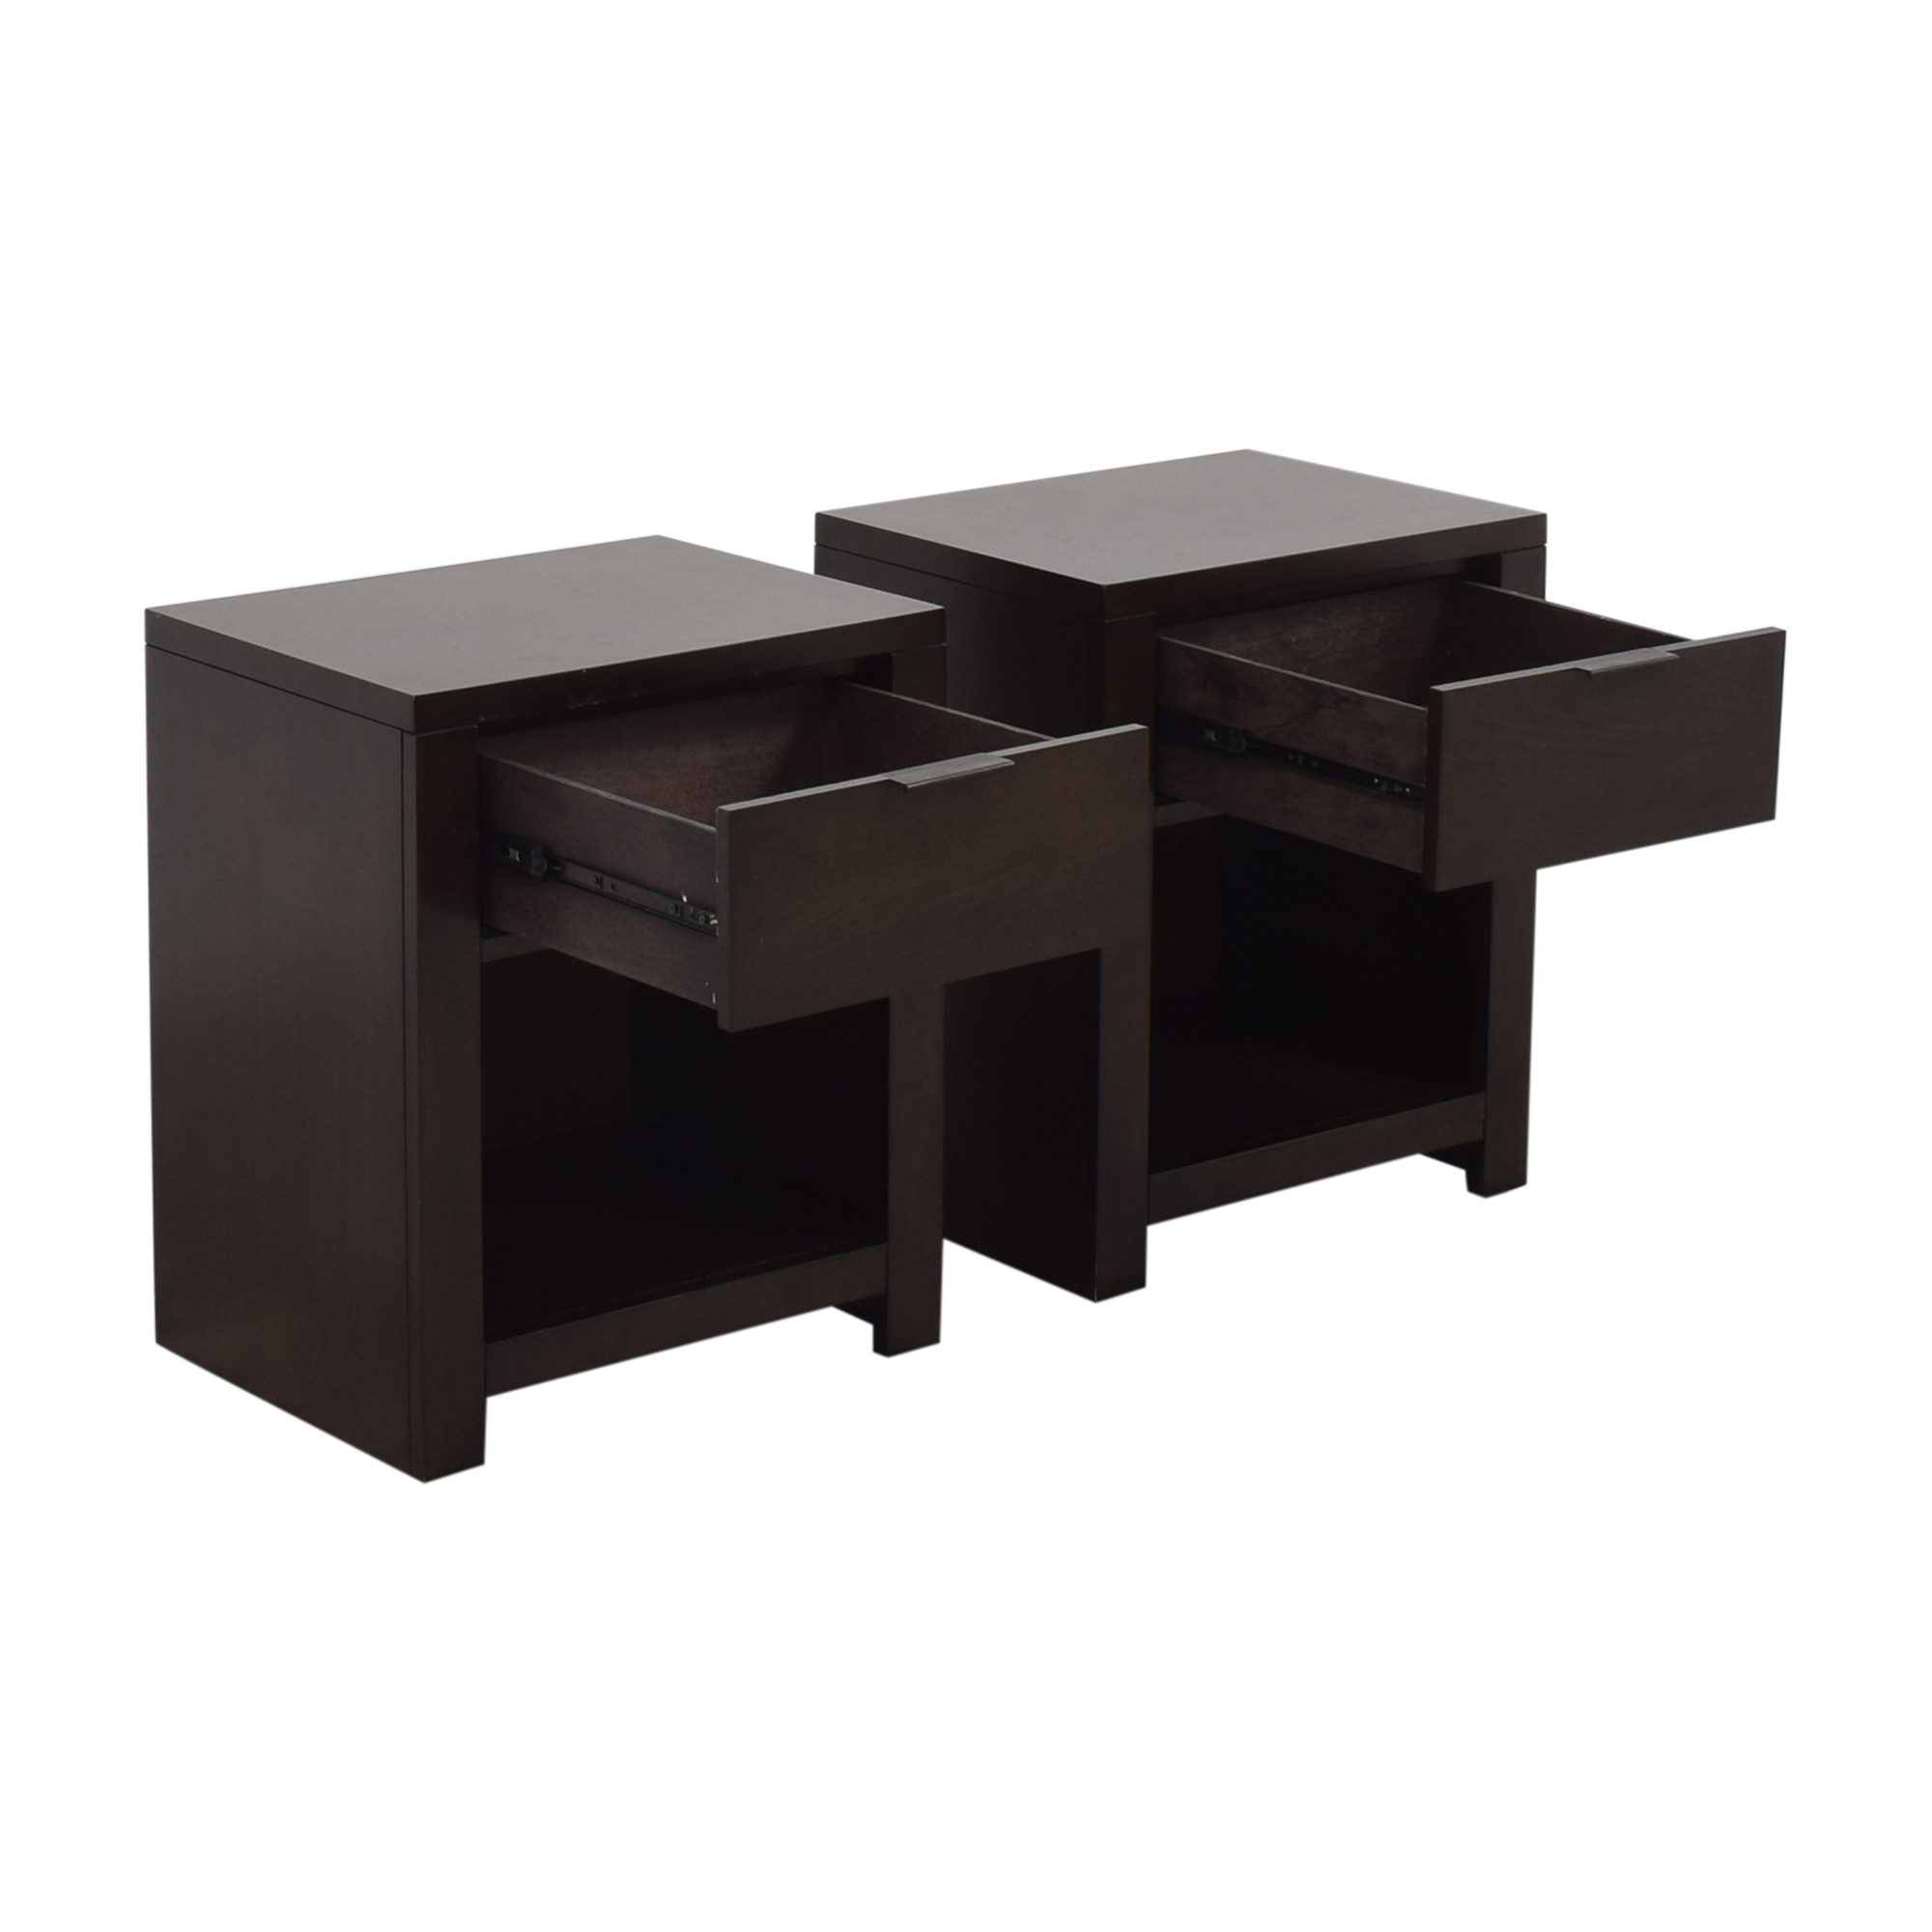 Macy's Tribeca Nightstands / End Tables